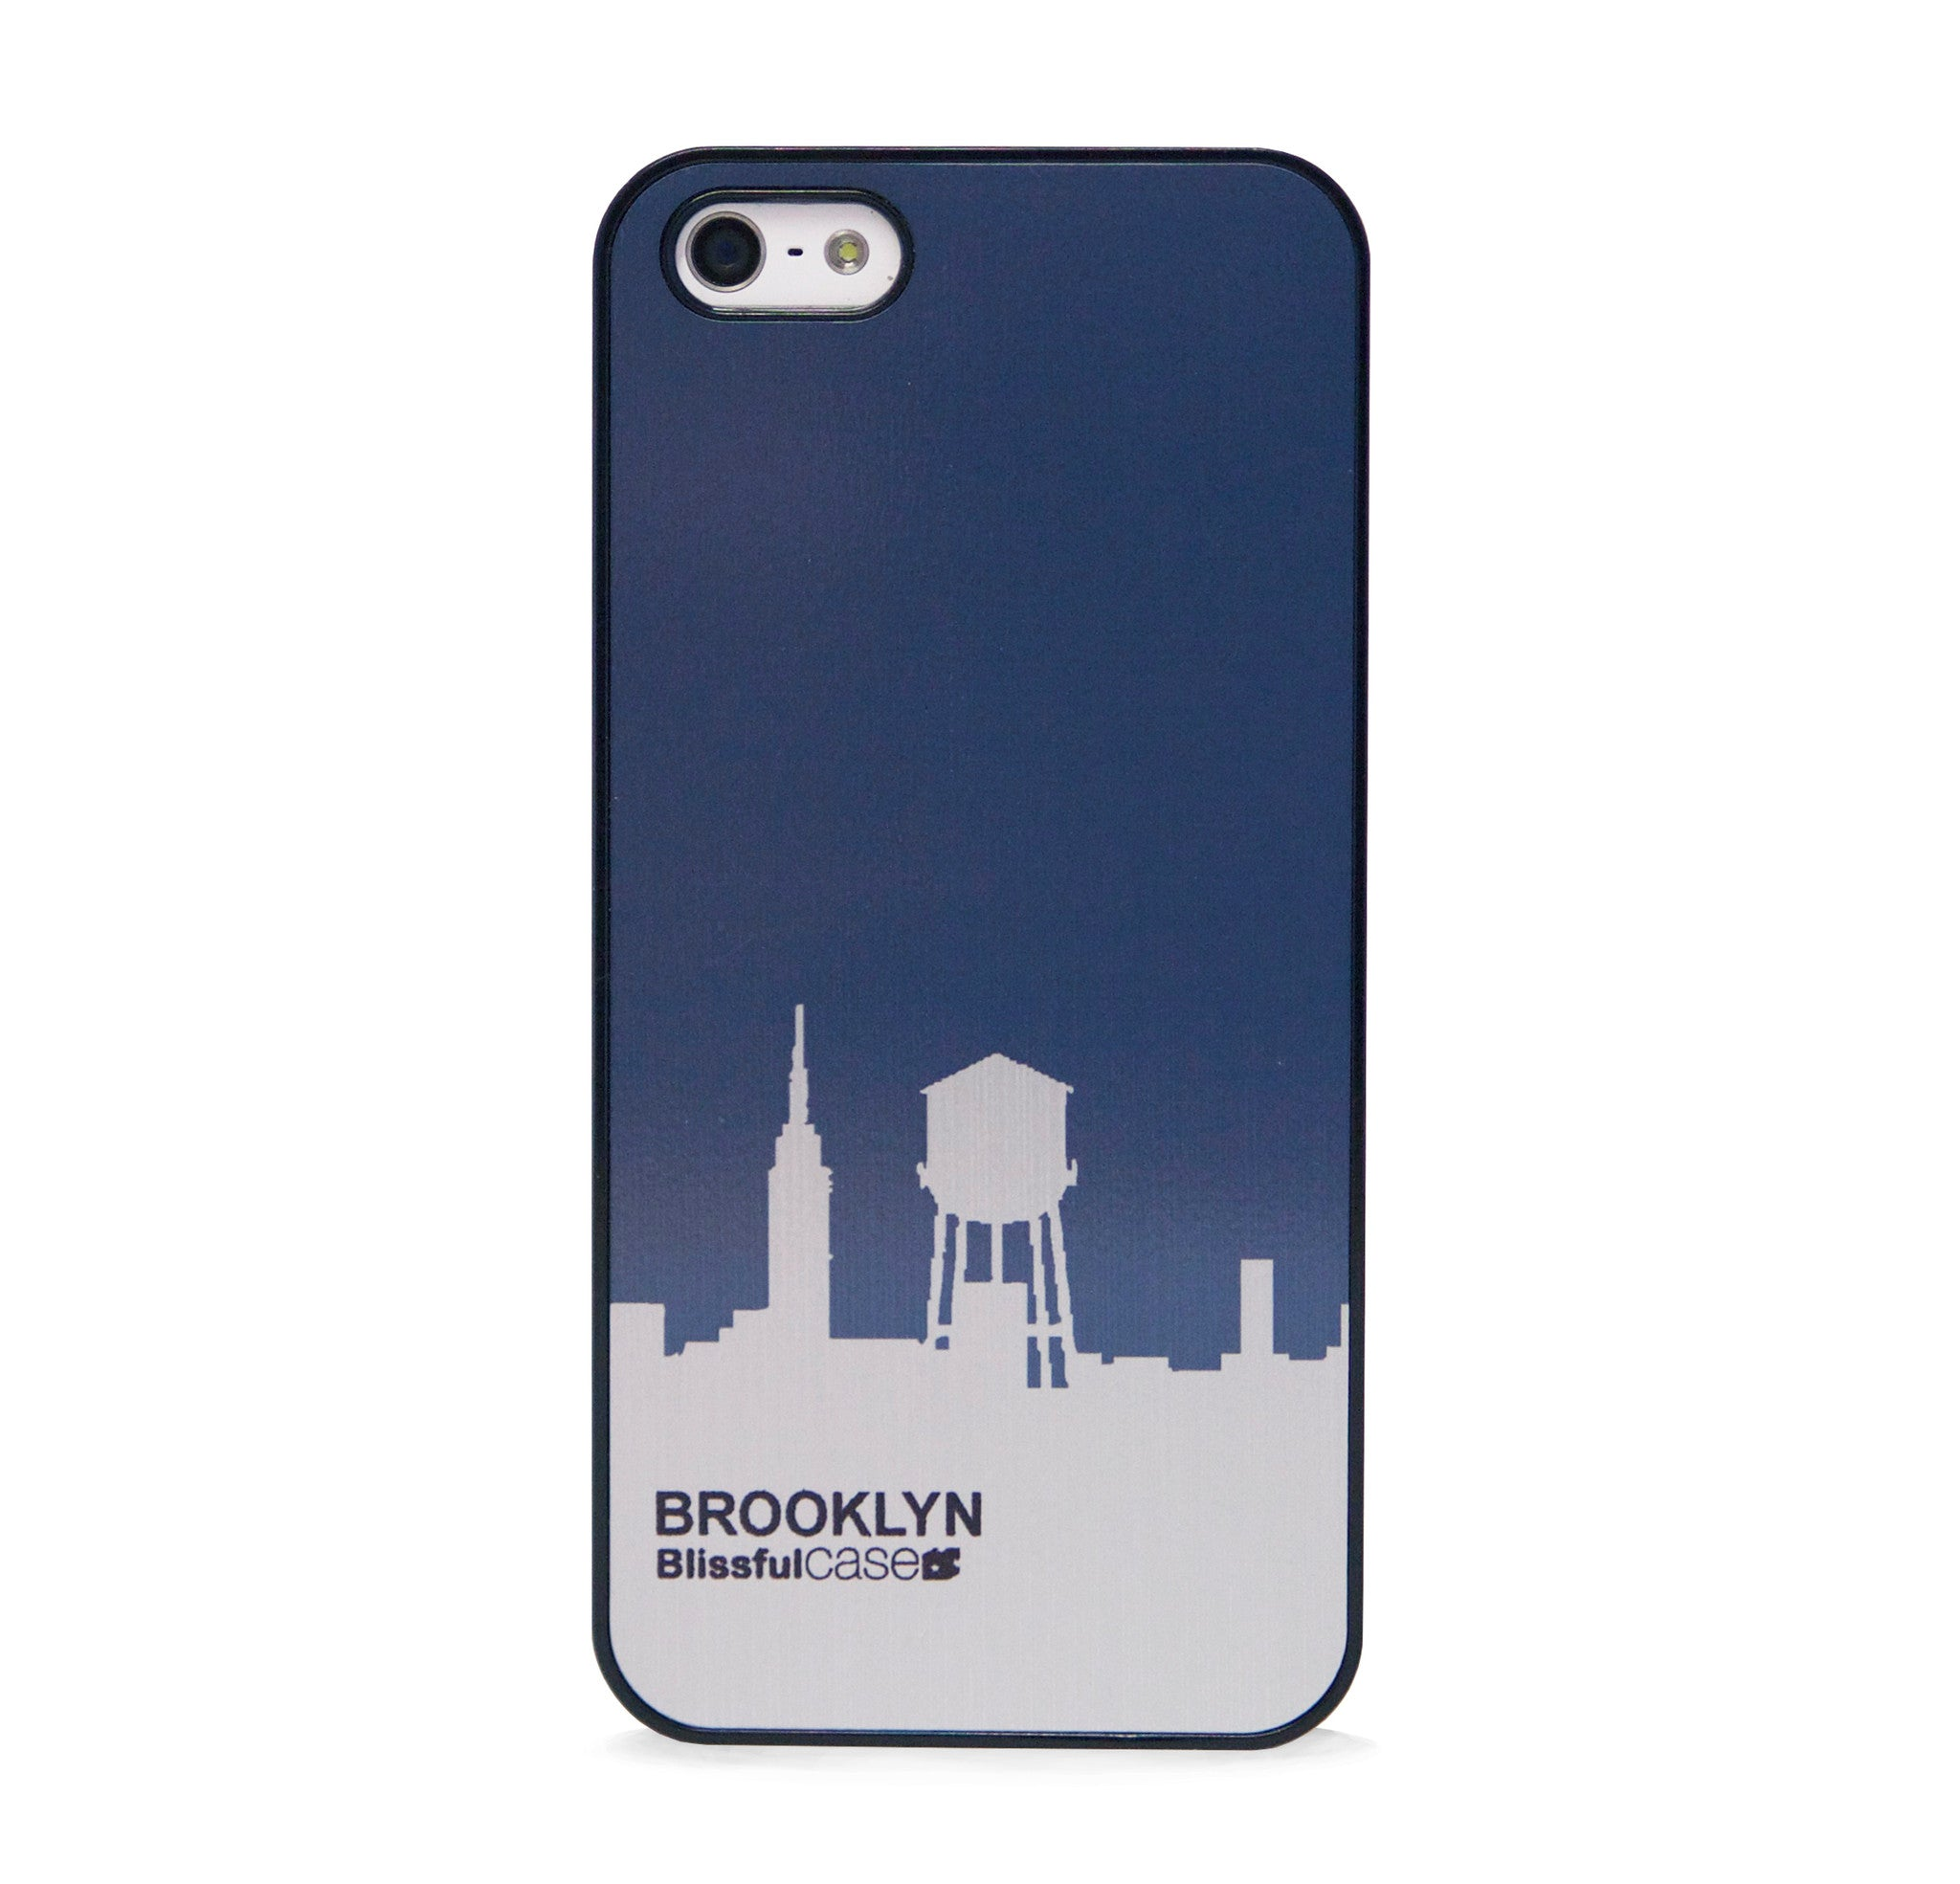 BROOKLYN GREY IPHONE 5/5S CASE